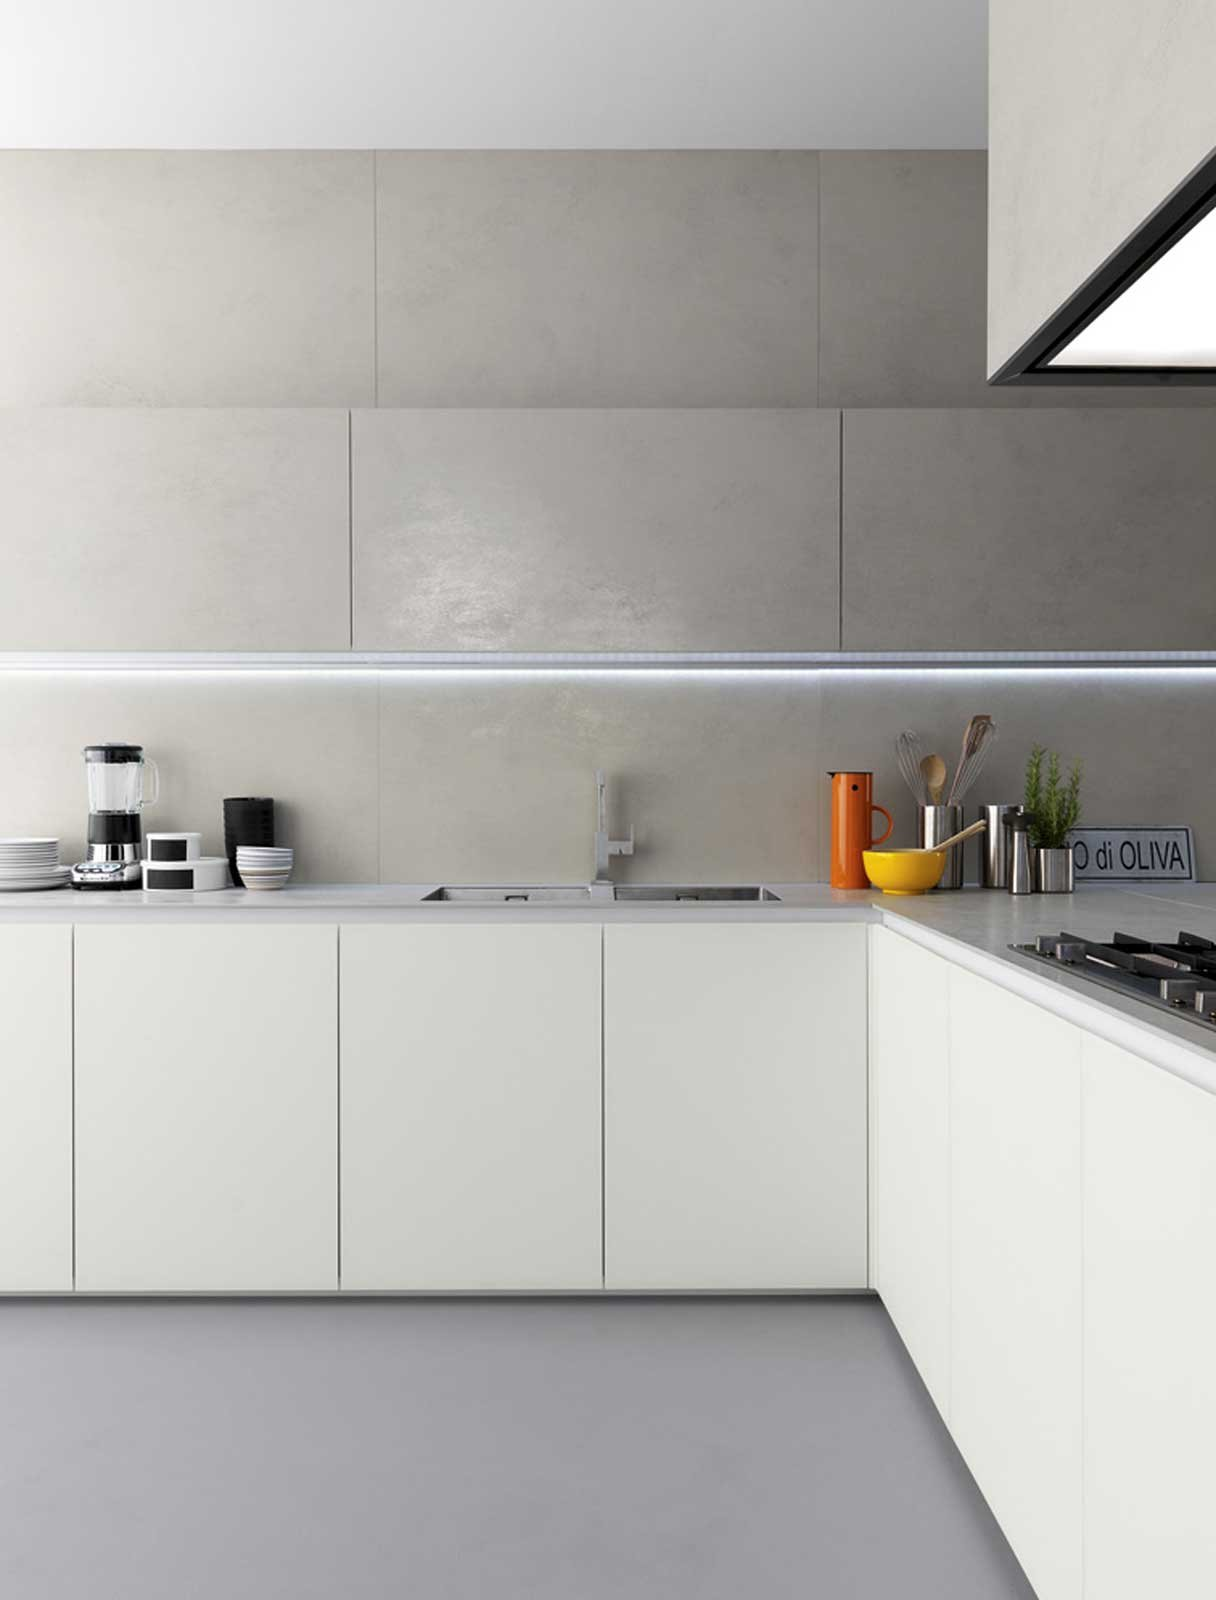 Awesome Cucine In Vetro Images - bakeroffroad.us - bakeroffroad.us